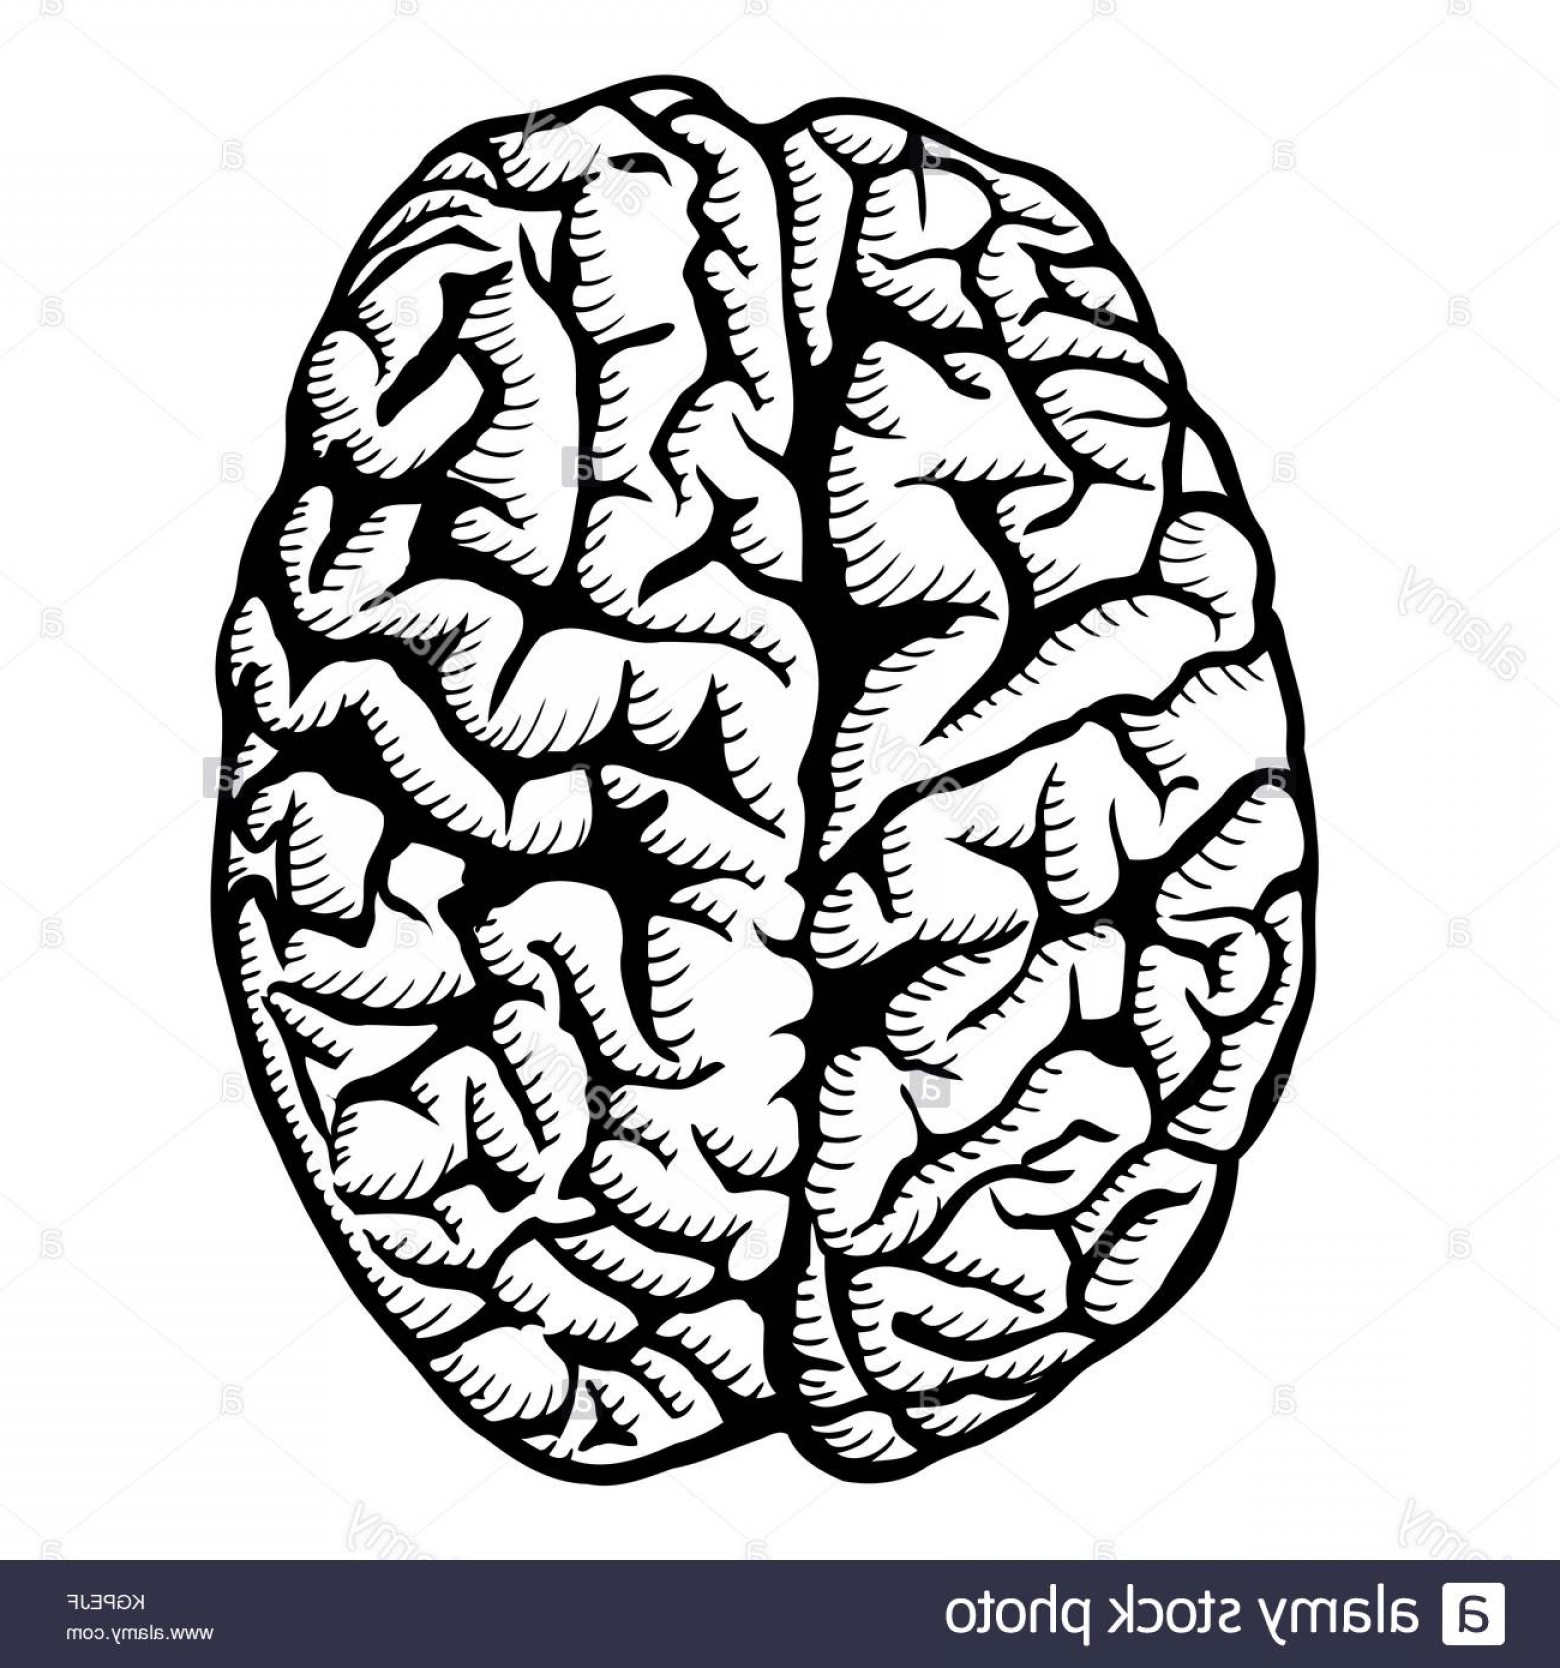 Brain Vector Art: Stock Image Human Brain Vector Illustration Isolated On White